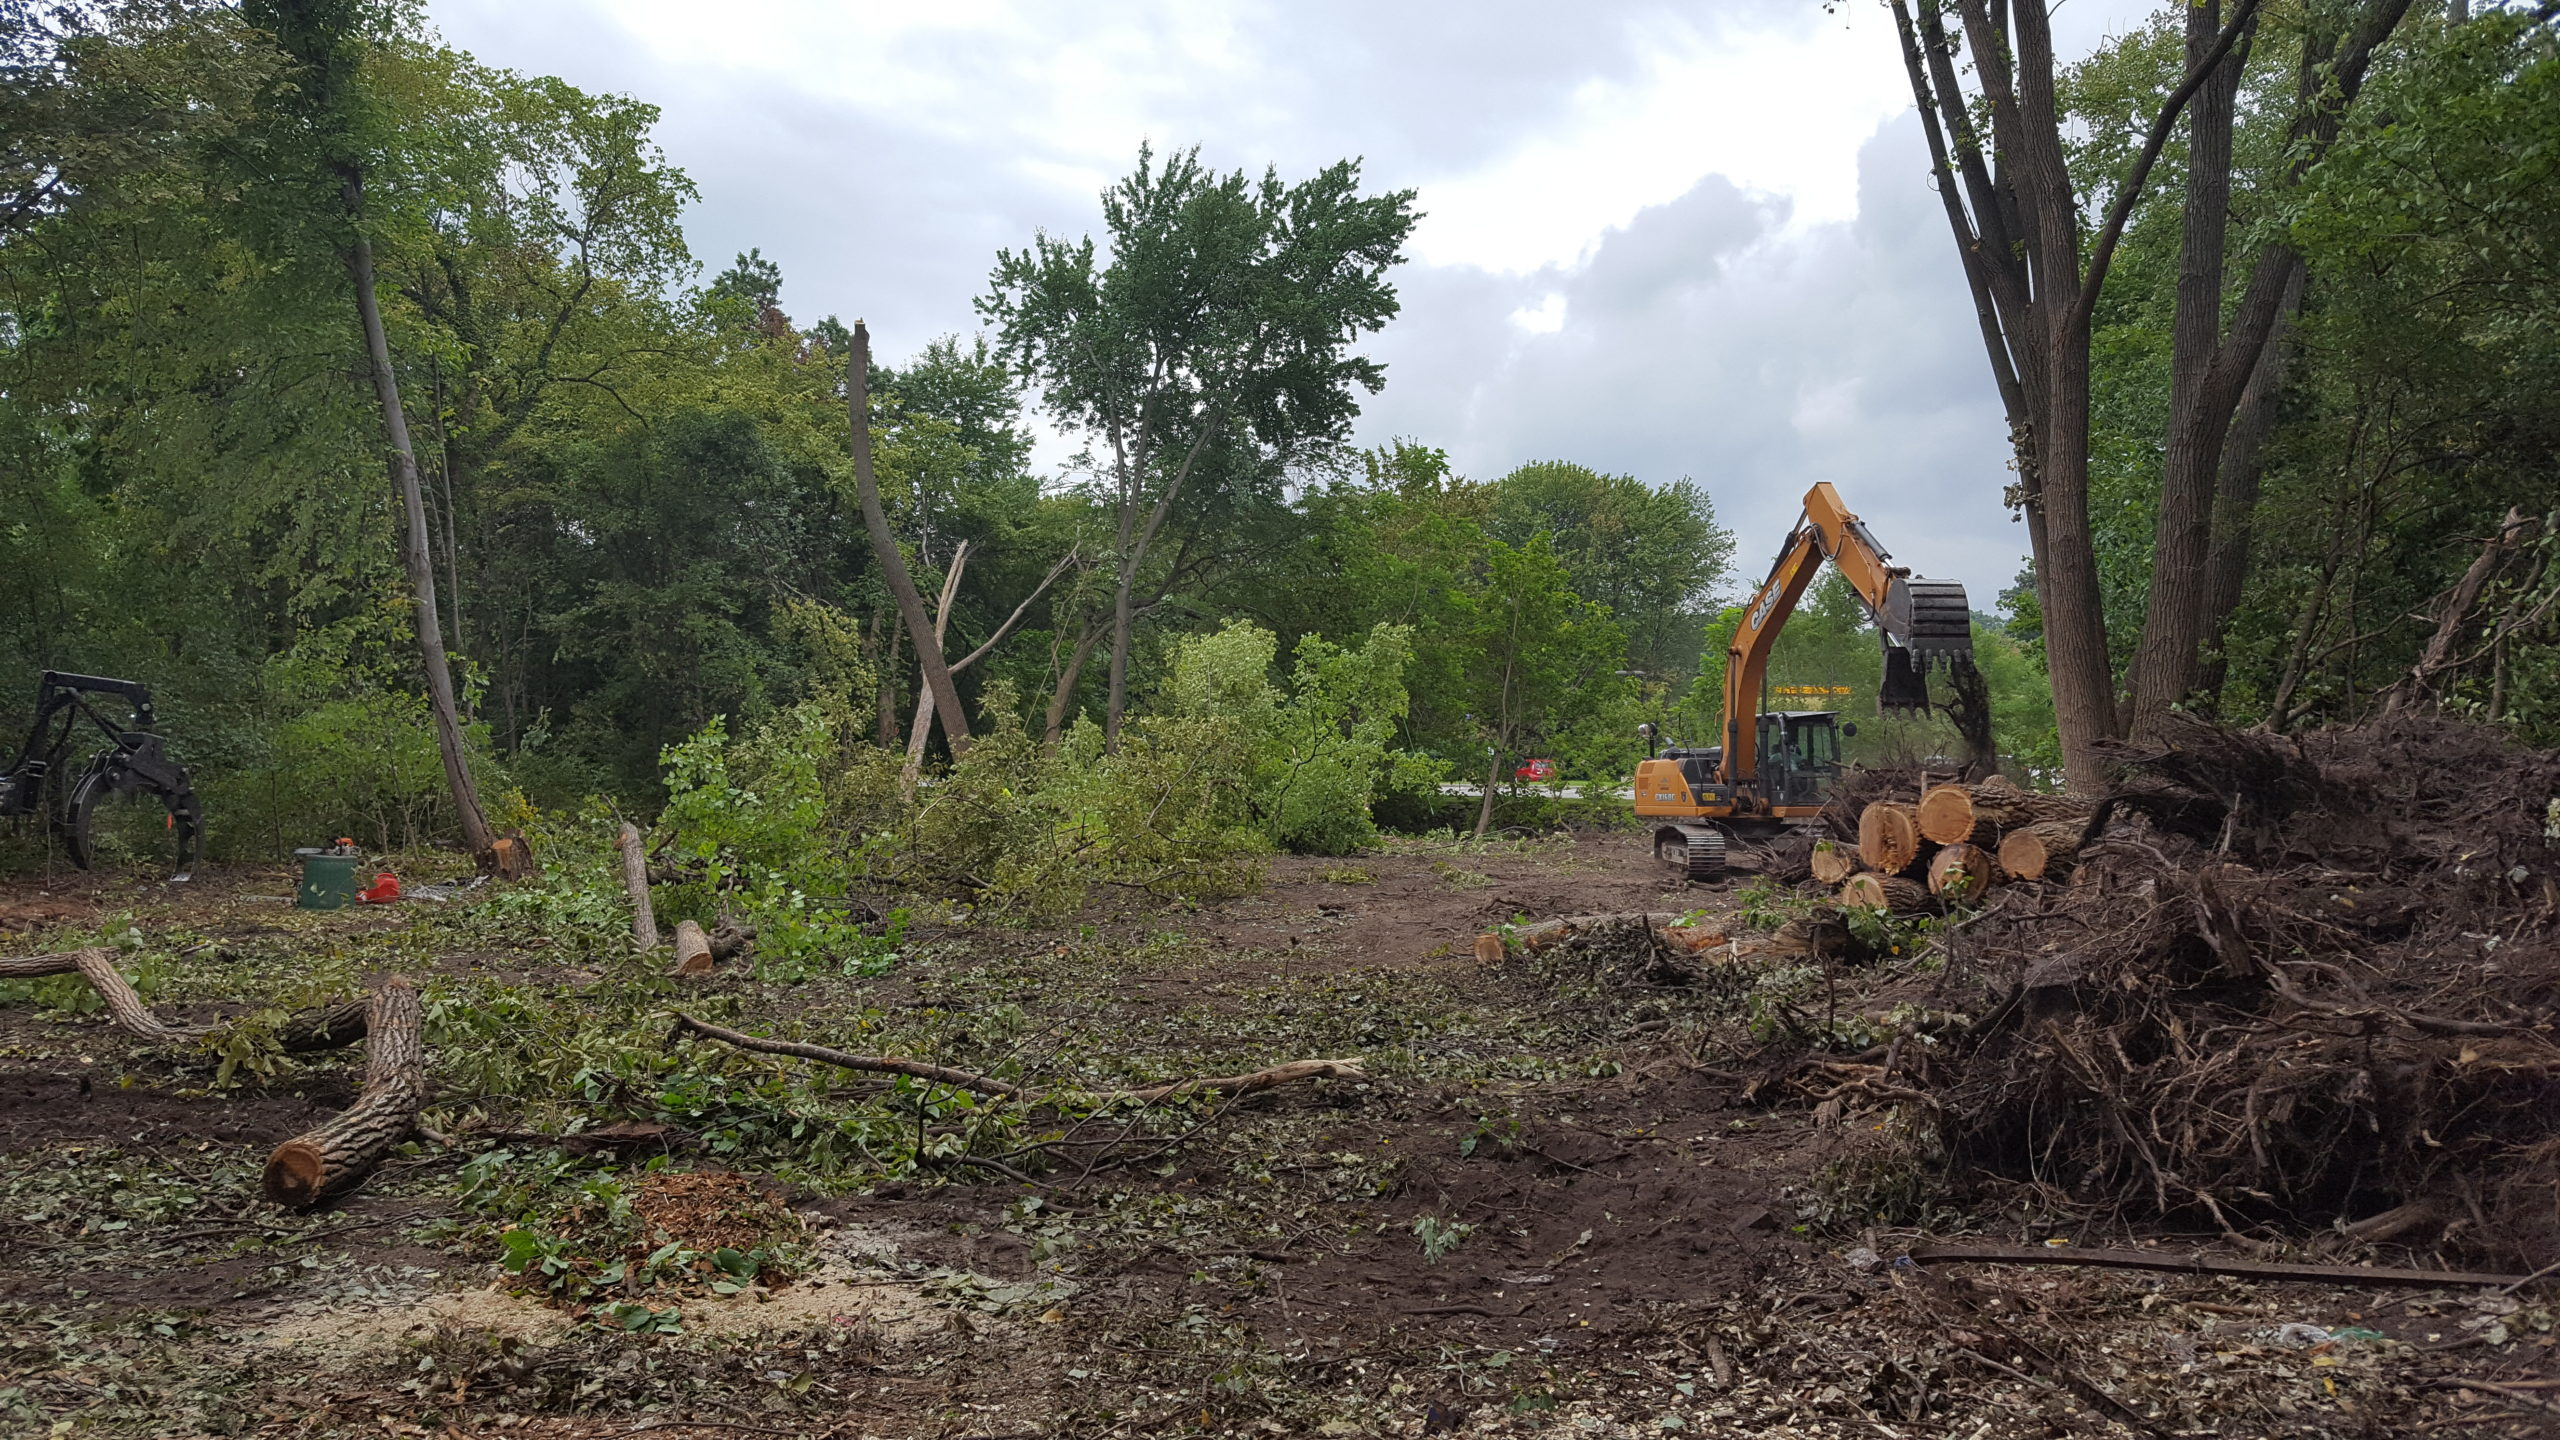 Land Clearing and Tree Removal - NJ Tree Care Services